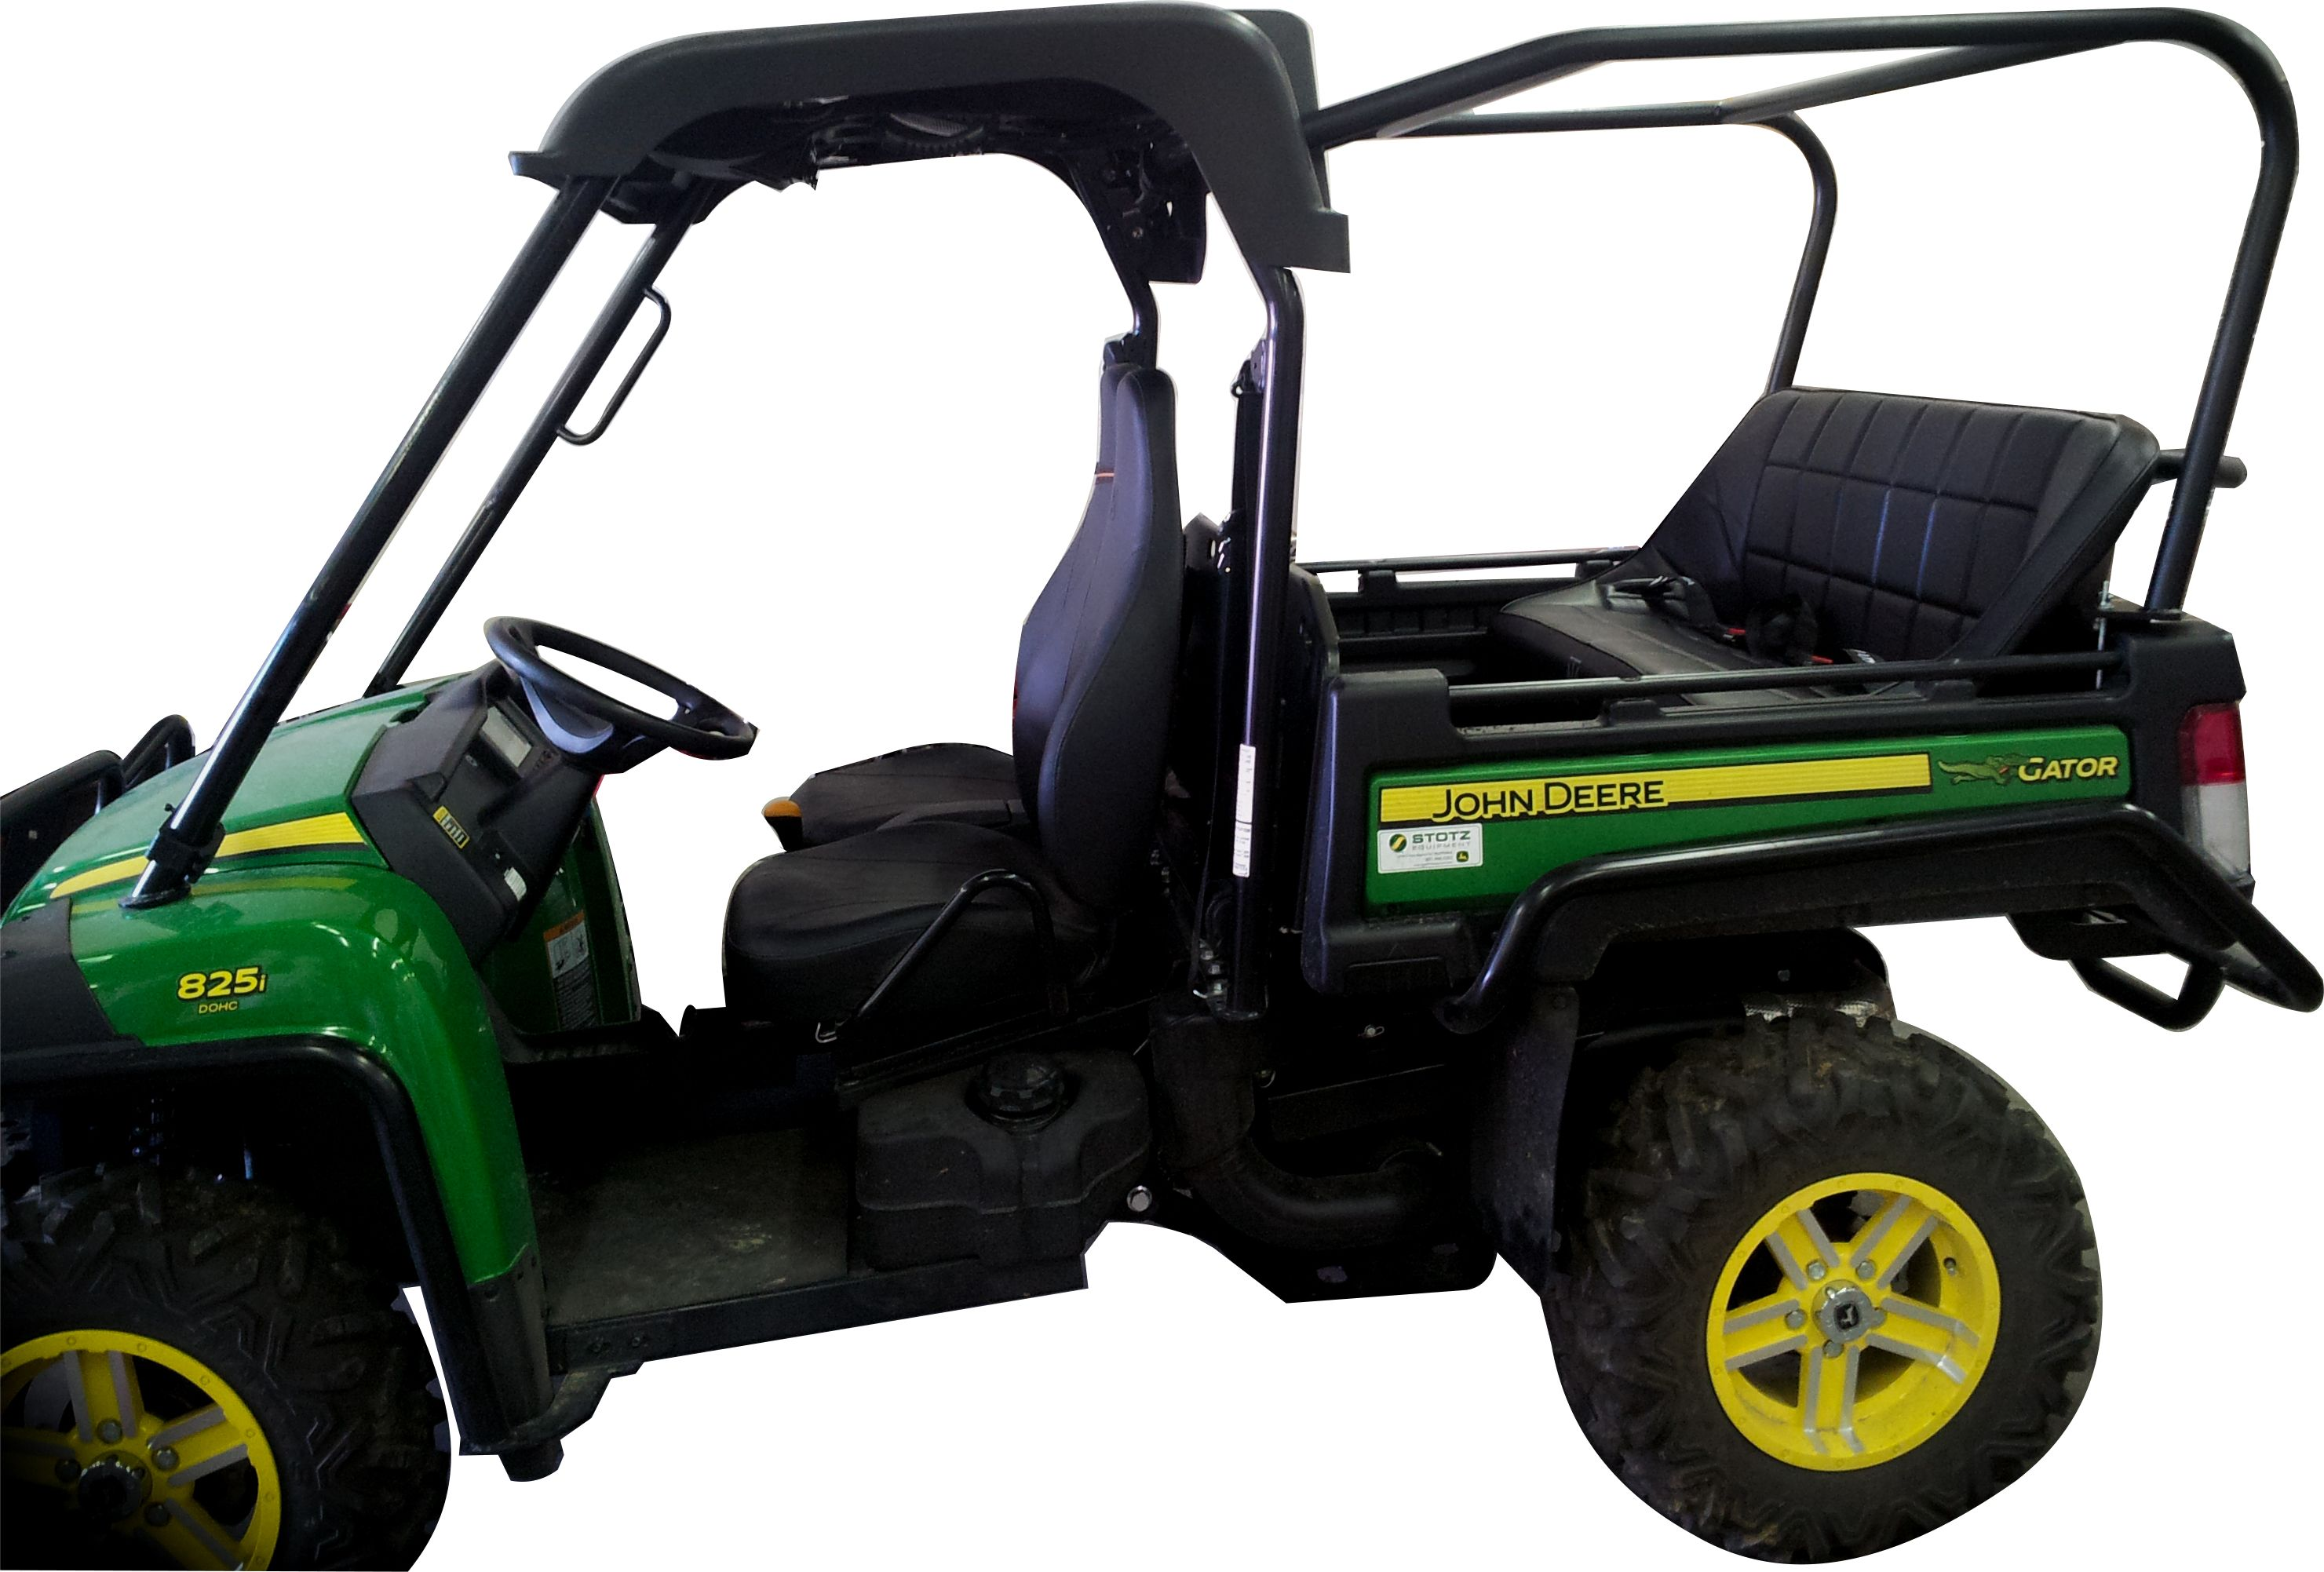 SIorfi-UTV John Deere Gator 825i Back Seat and Roll Cage Kit. This system